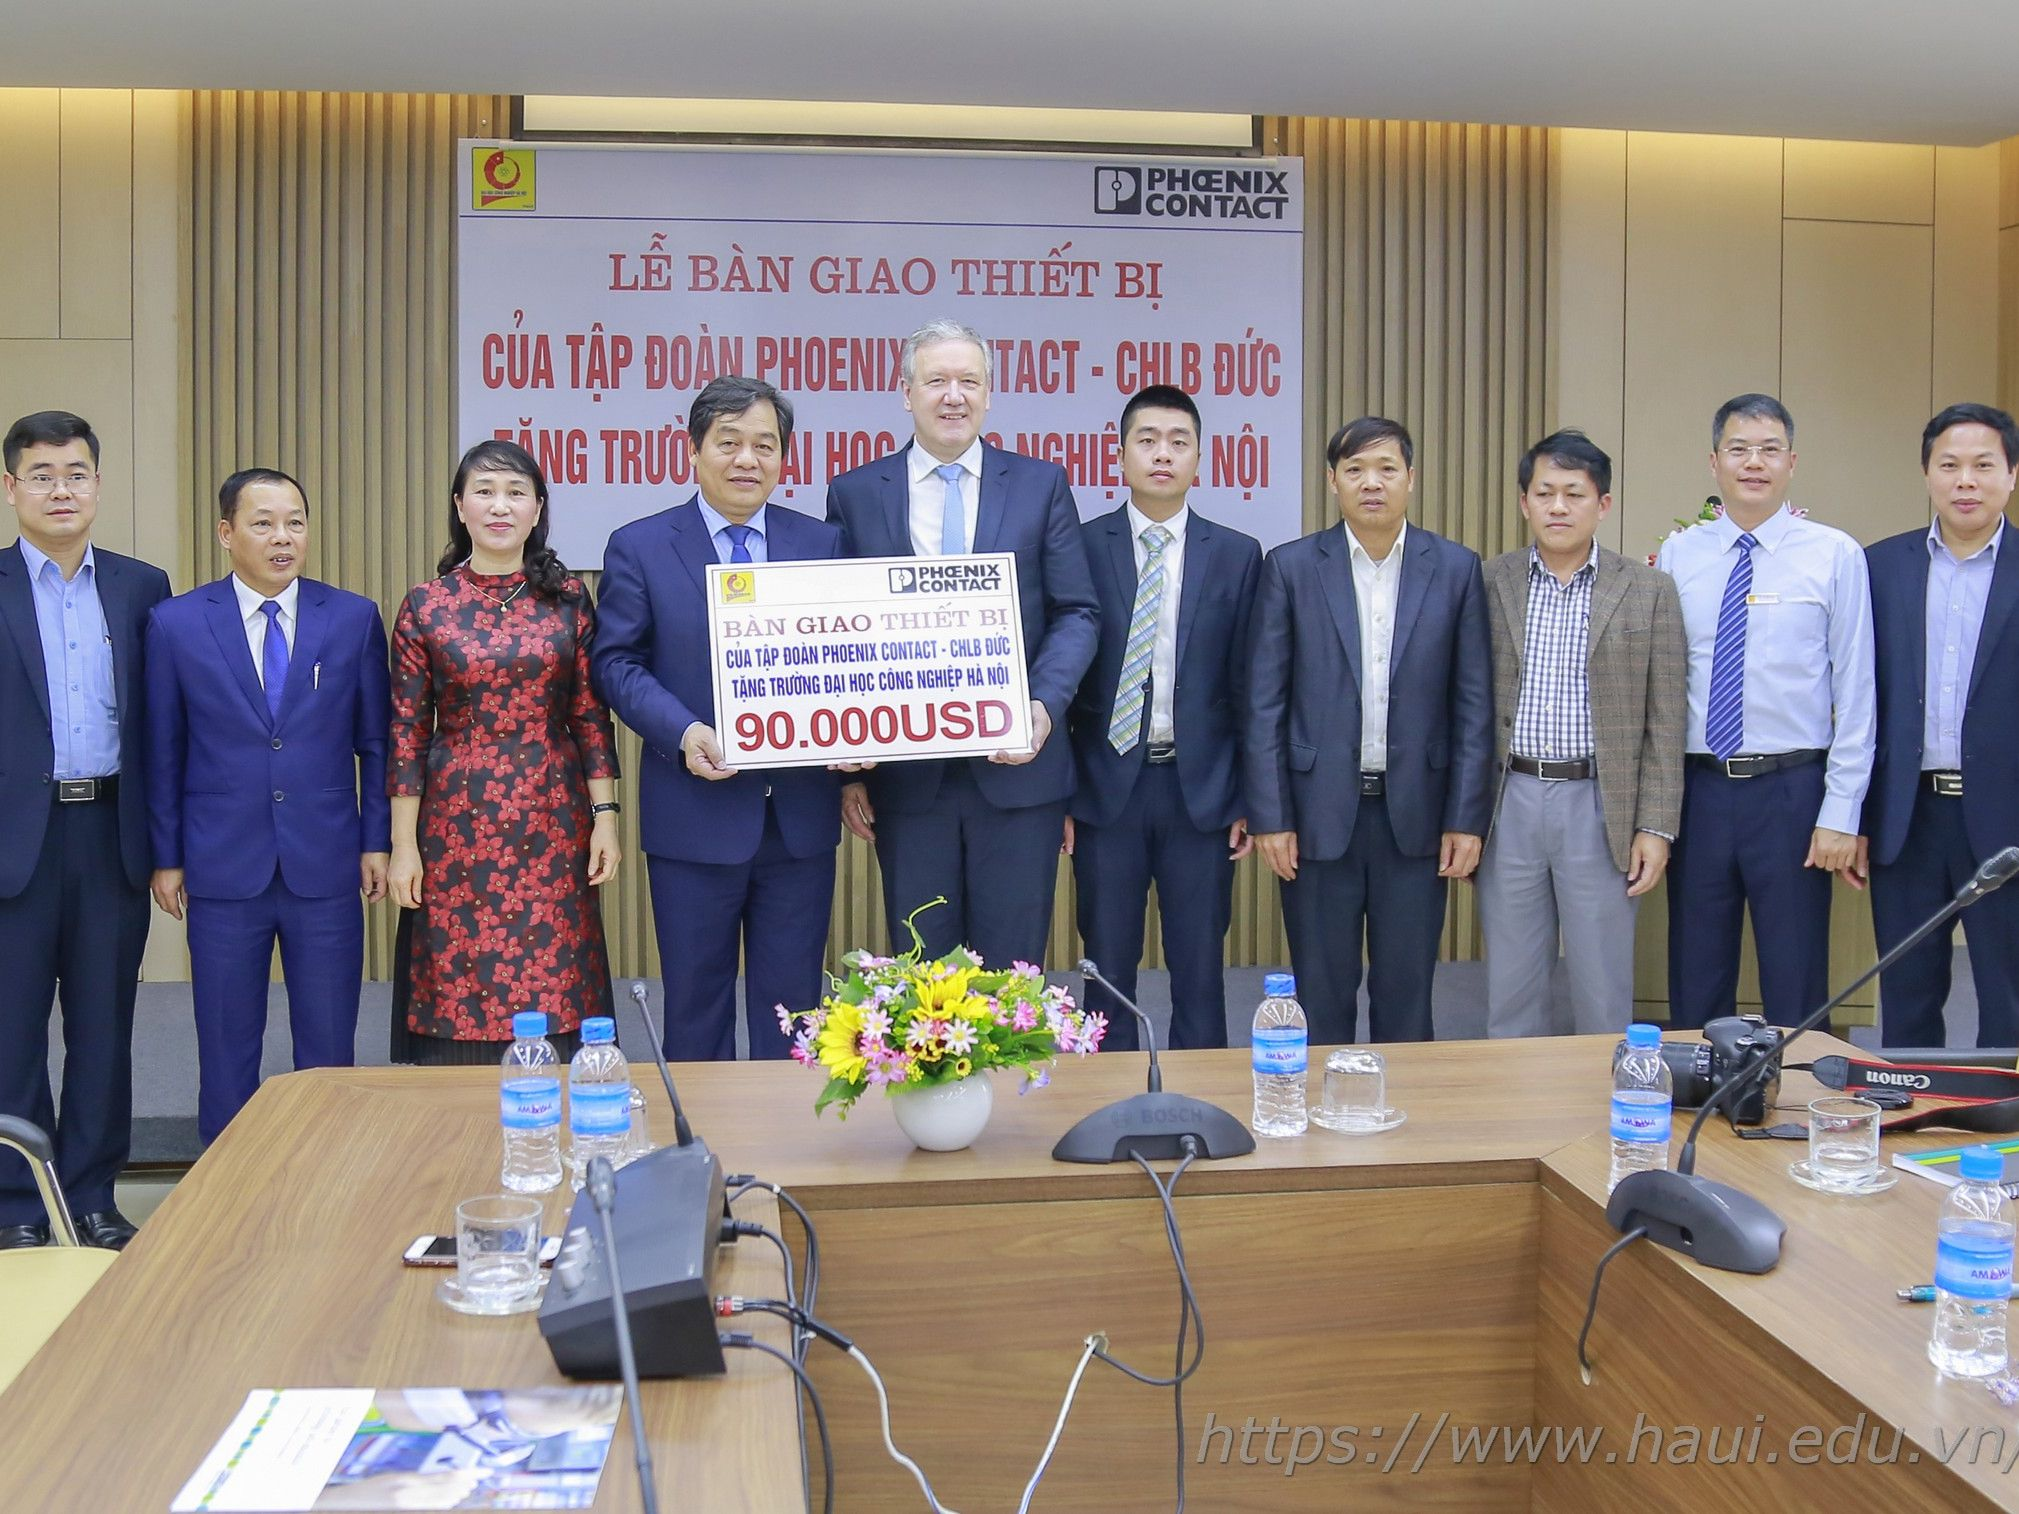 Equipment Handover Ceremony of Phoenix Contact Group - Germany to Hanoi University of Industry